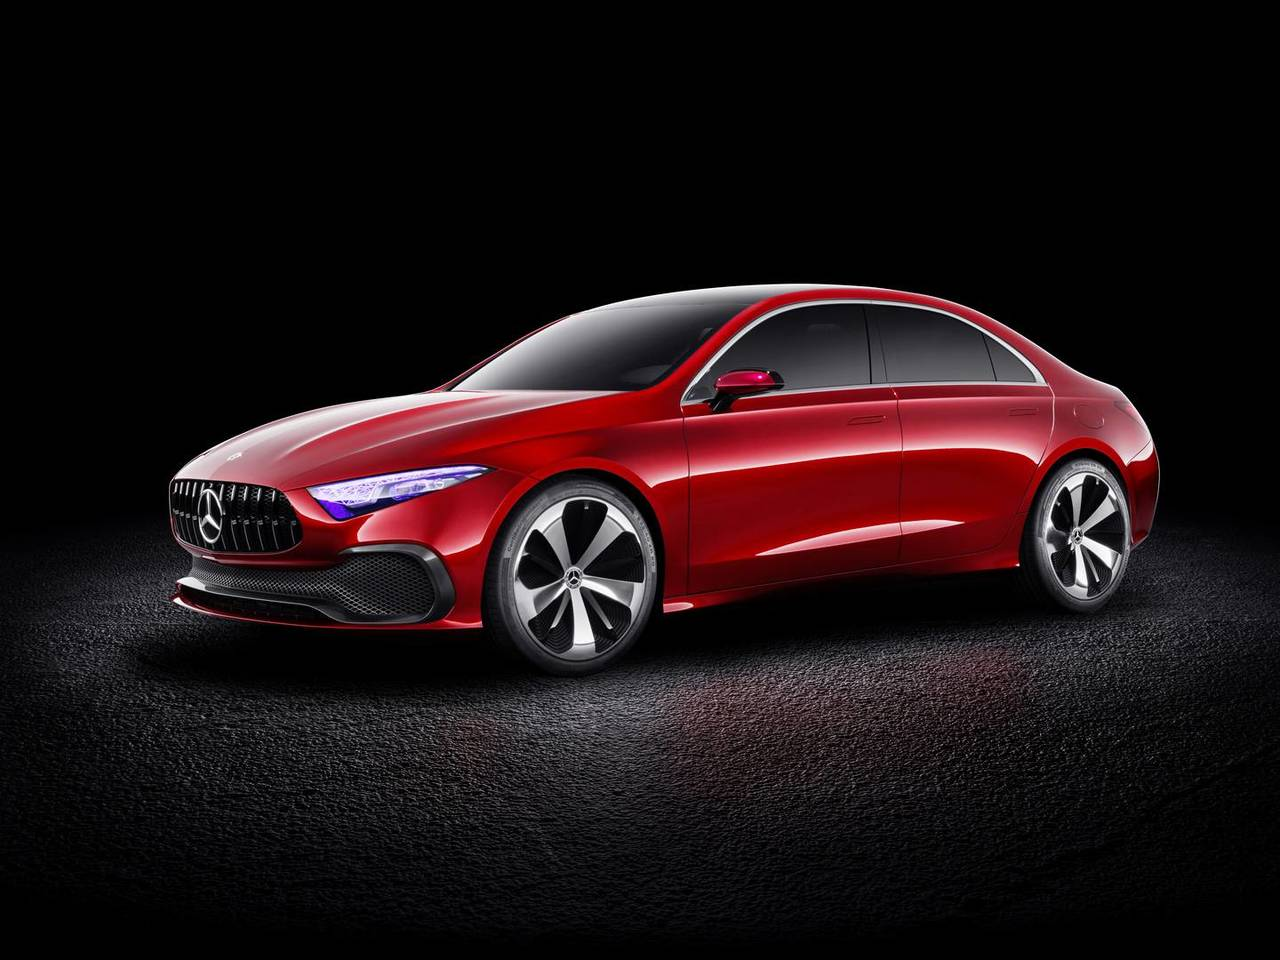 Mercedes Concept A Sedan front three quarters